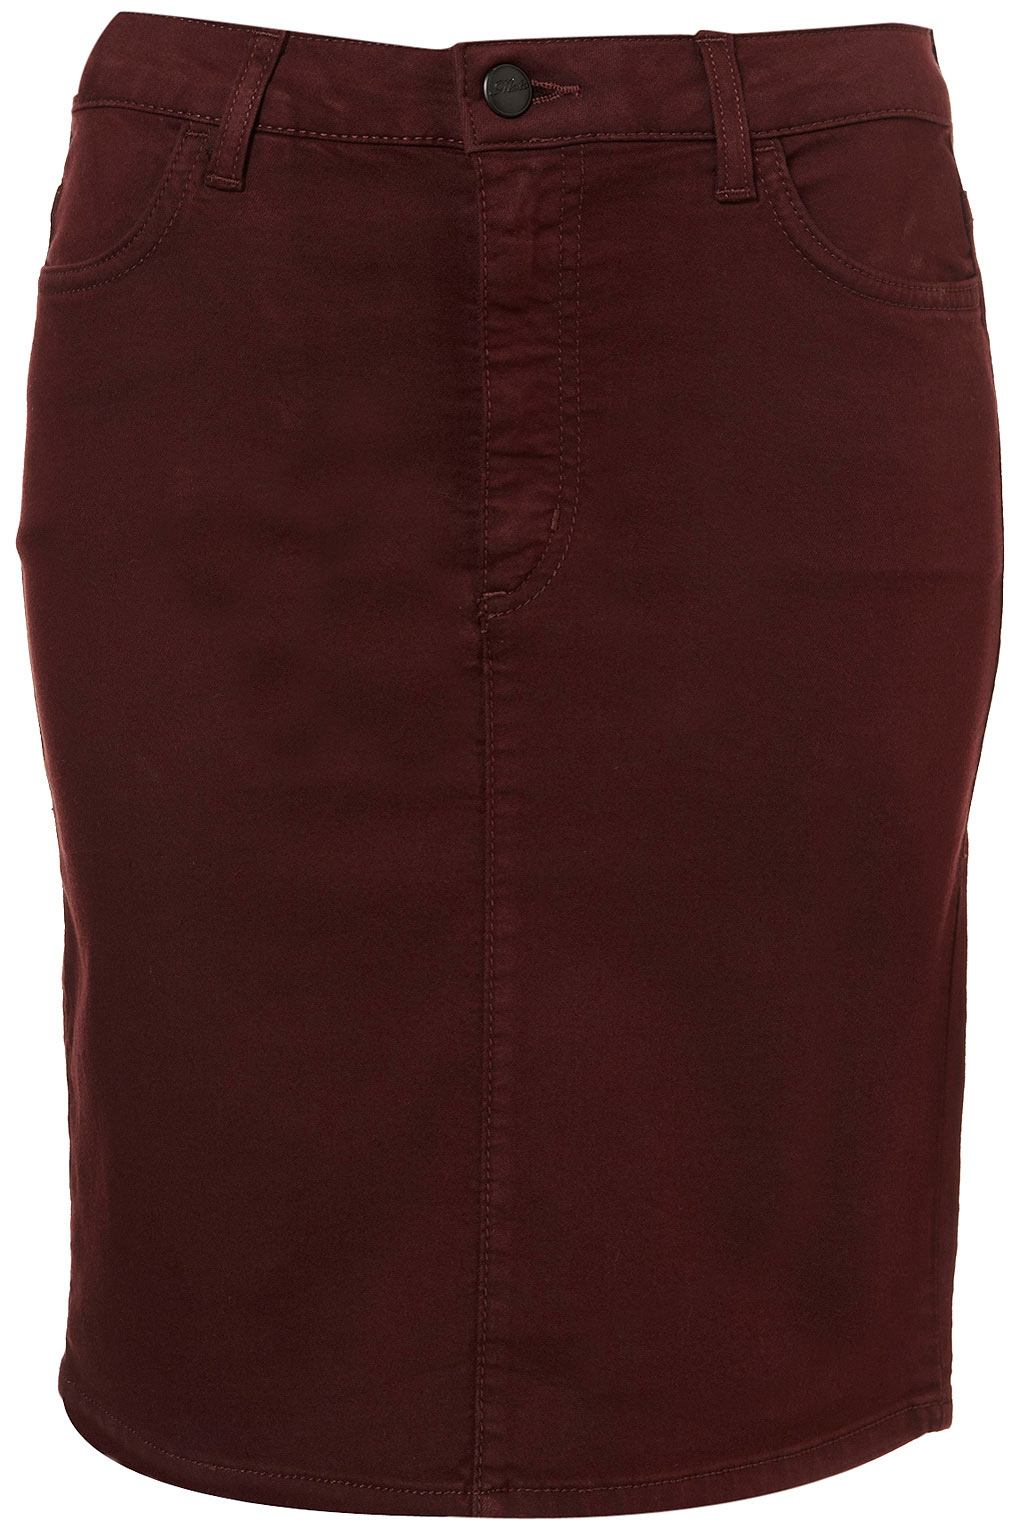 Topshop Denim Pencil Skirt in Purple | Lyst